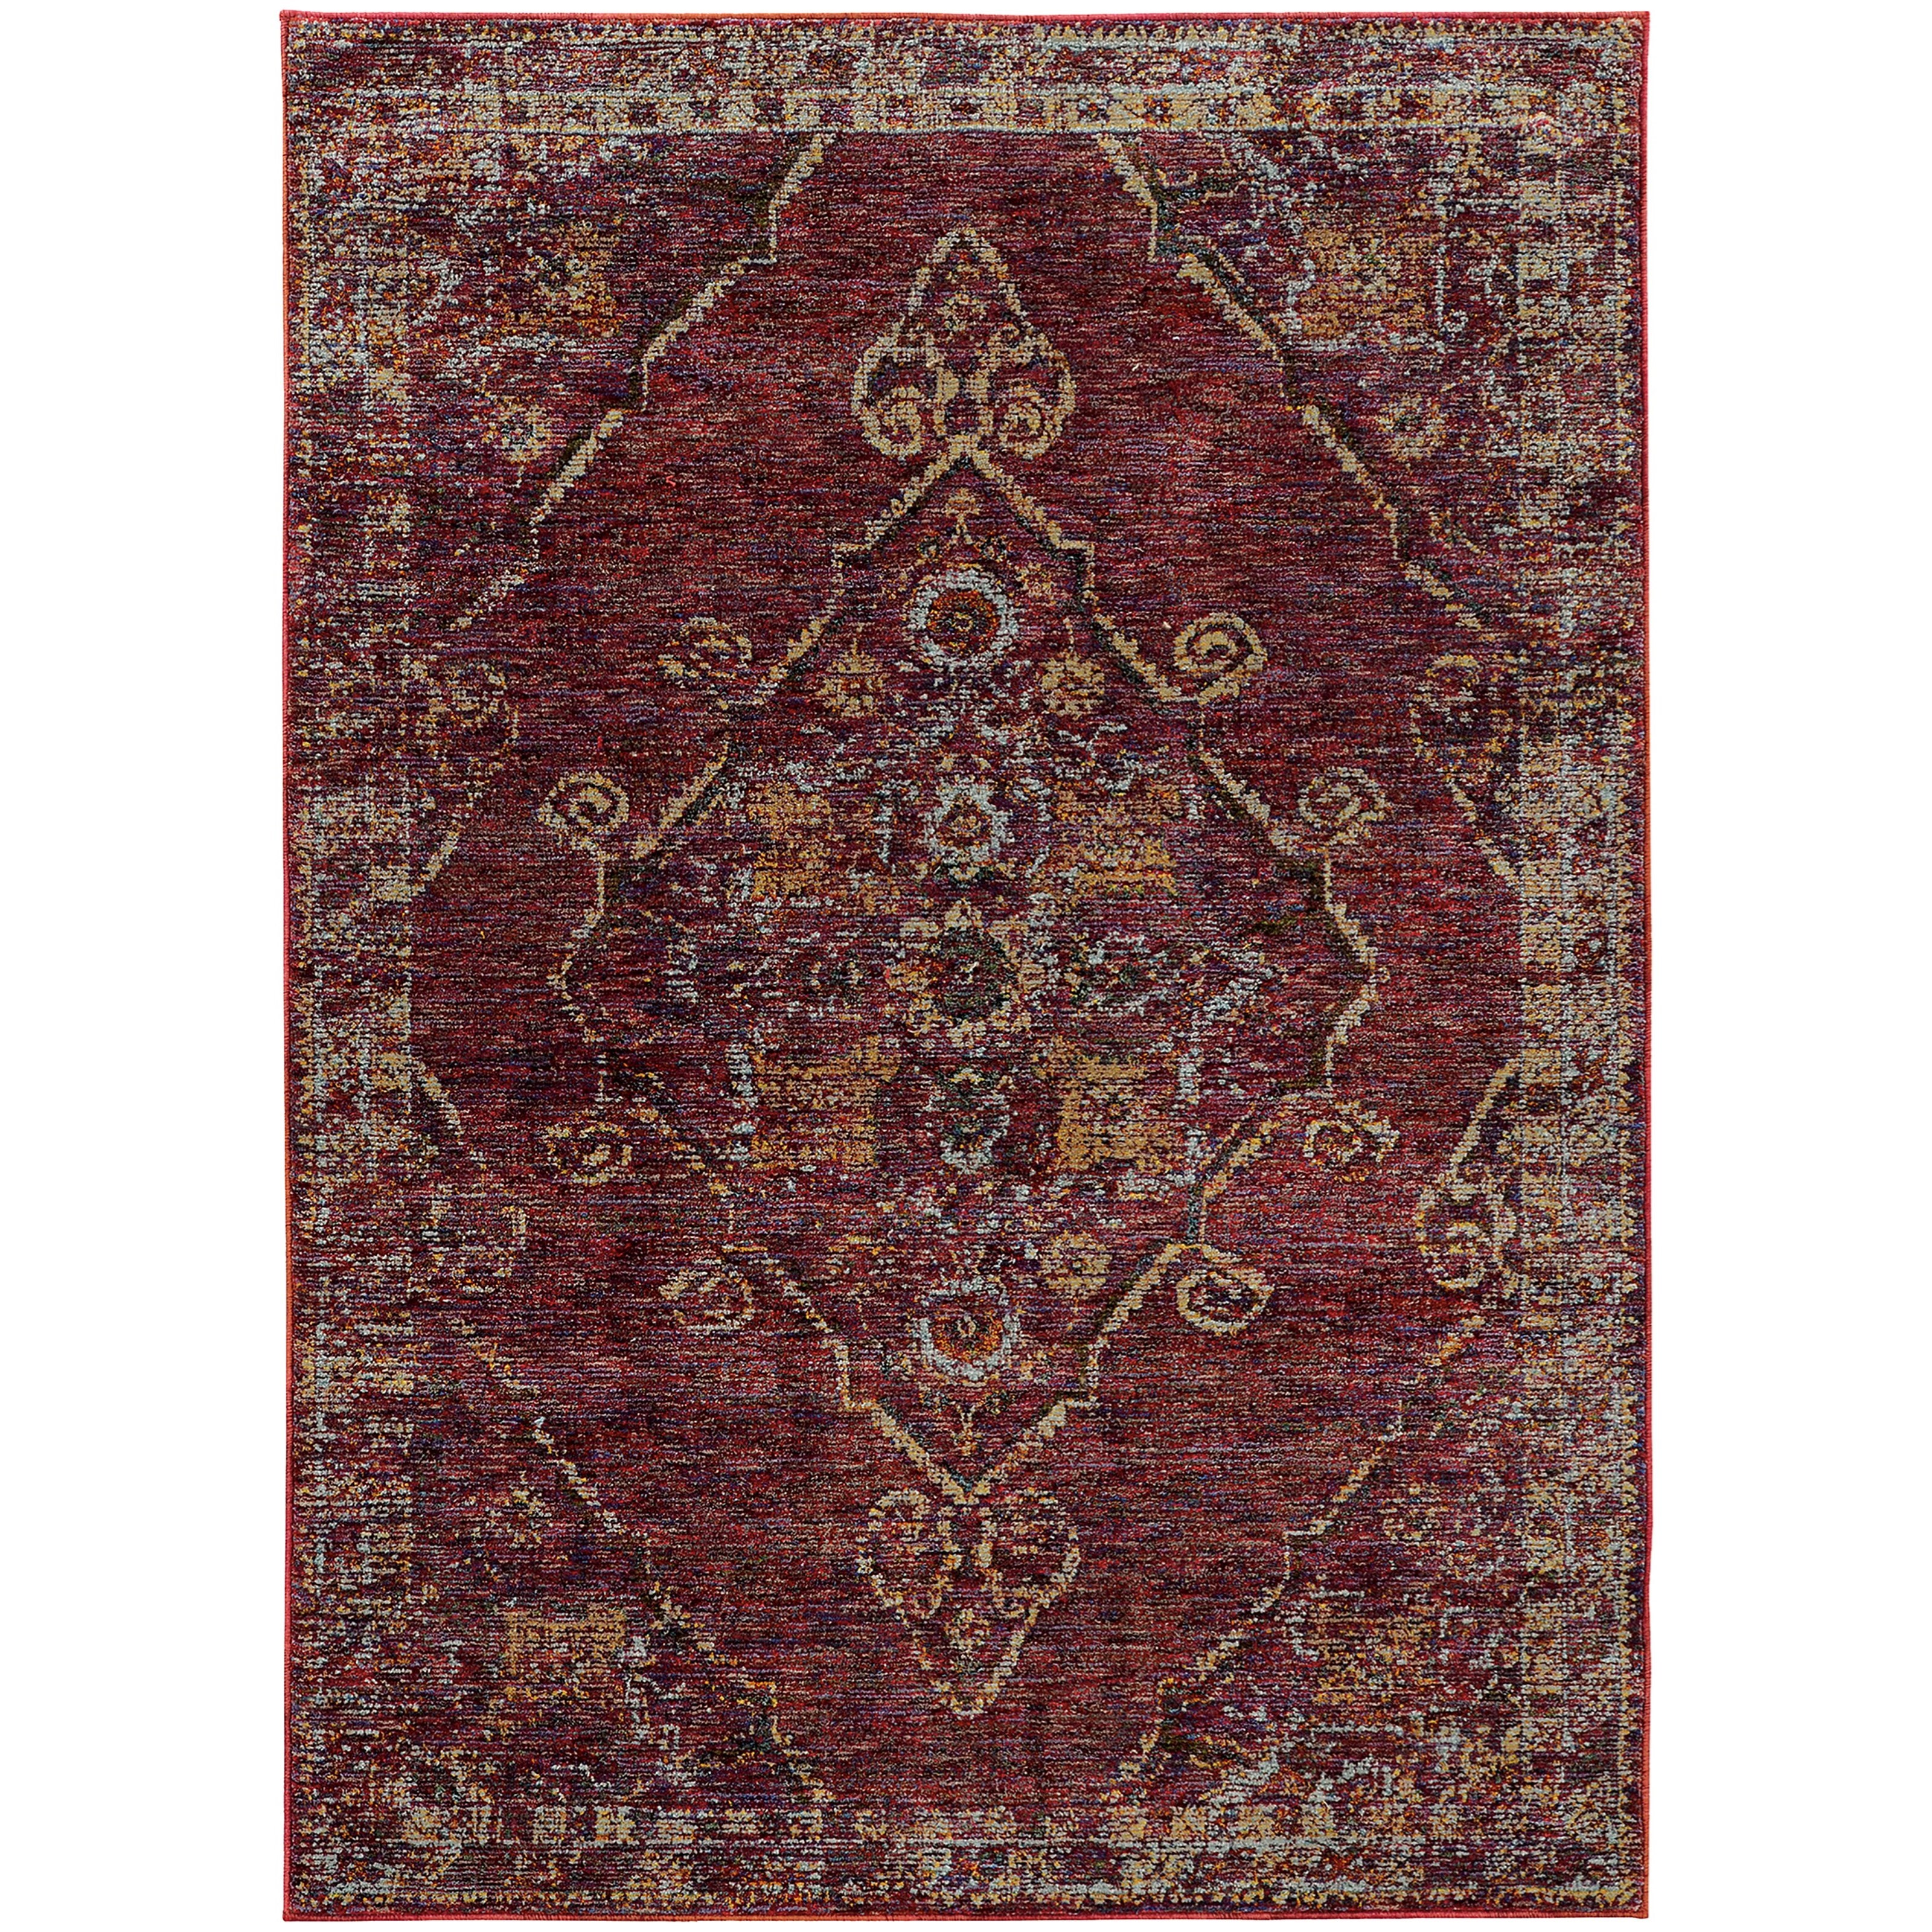 "Andorra 3' 3"" X  5' 2"" Casual Red/ Gold Rectangle Ru by Oriental Weavers at Steger's Furniture"